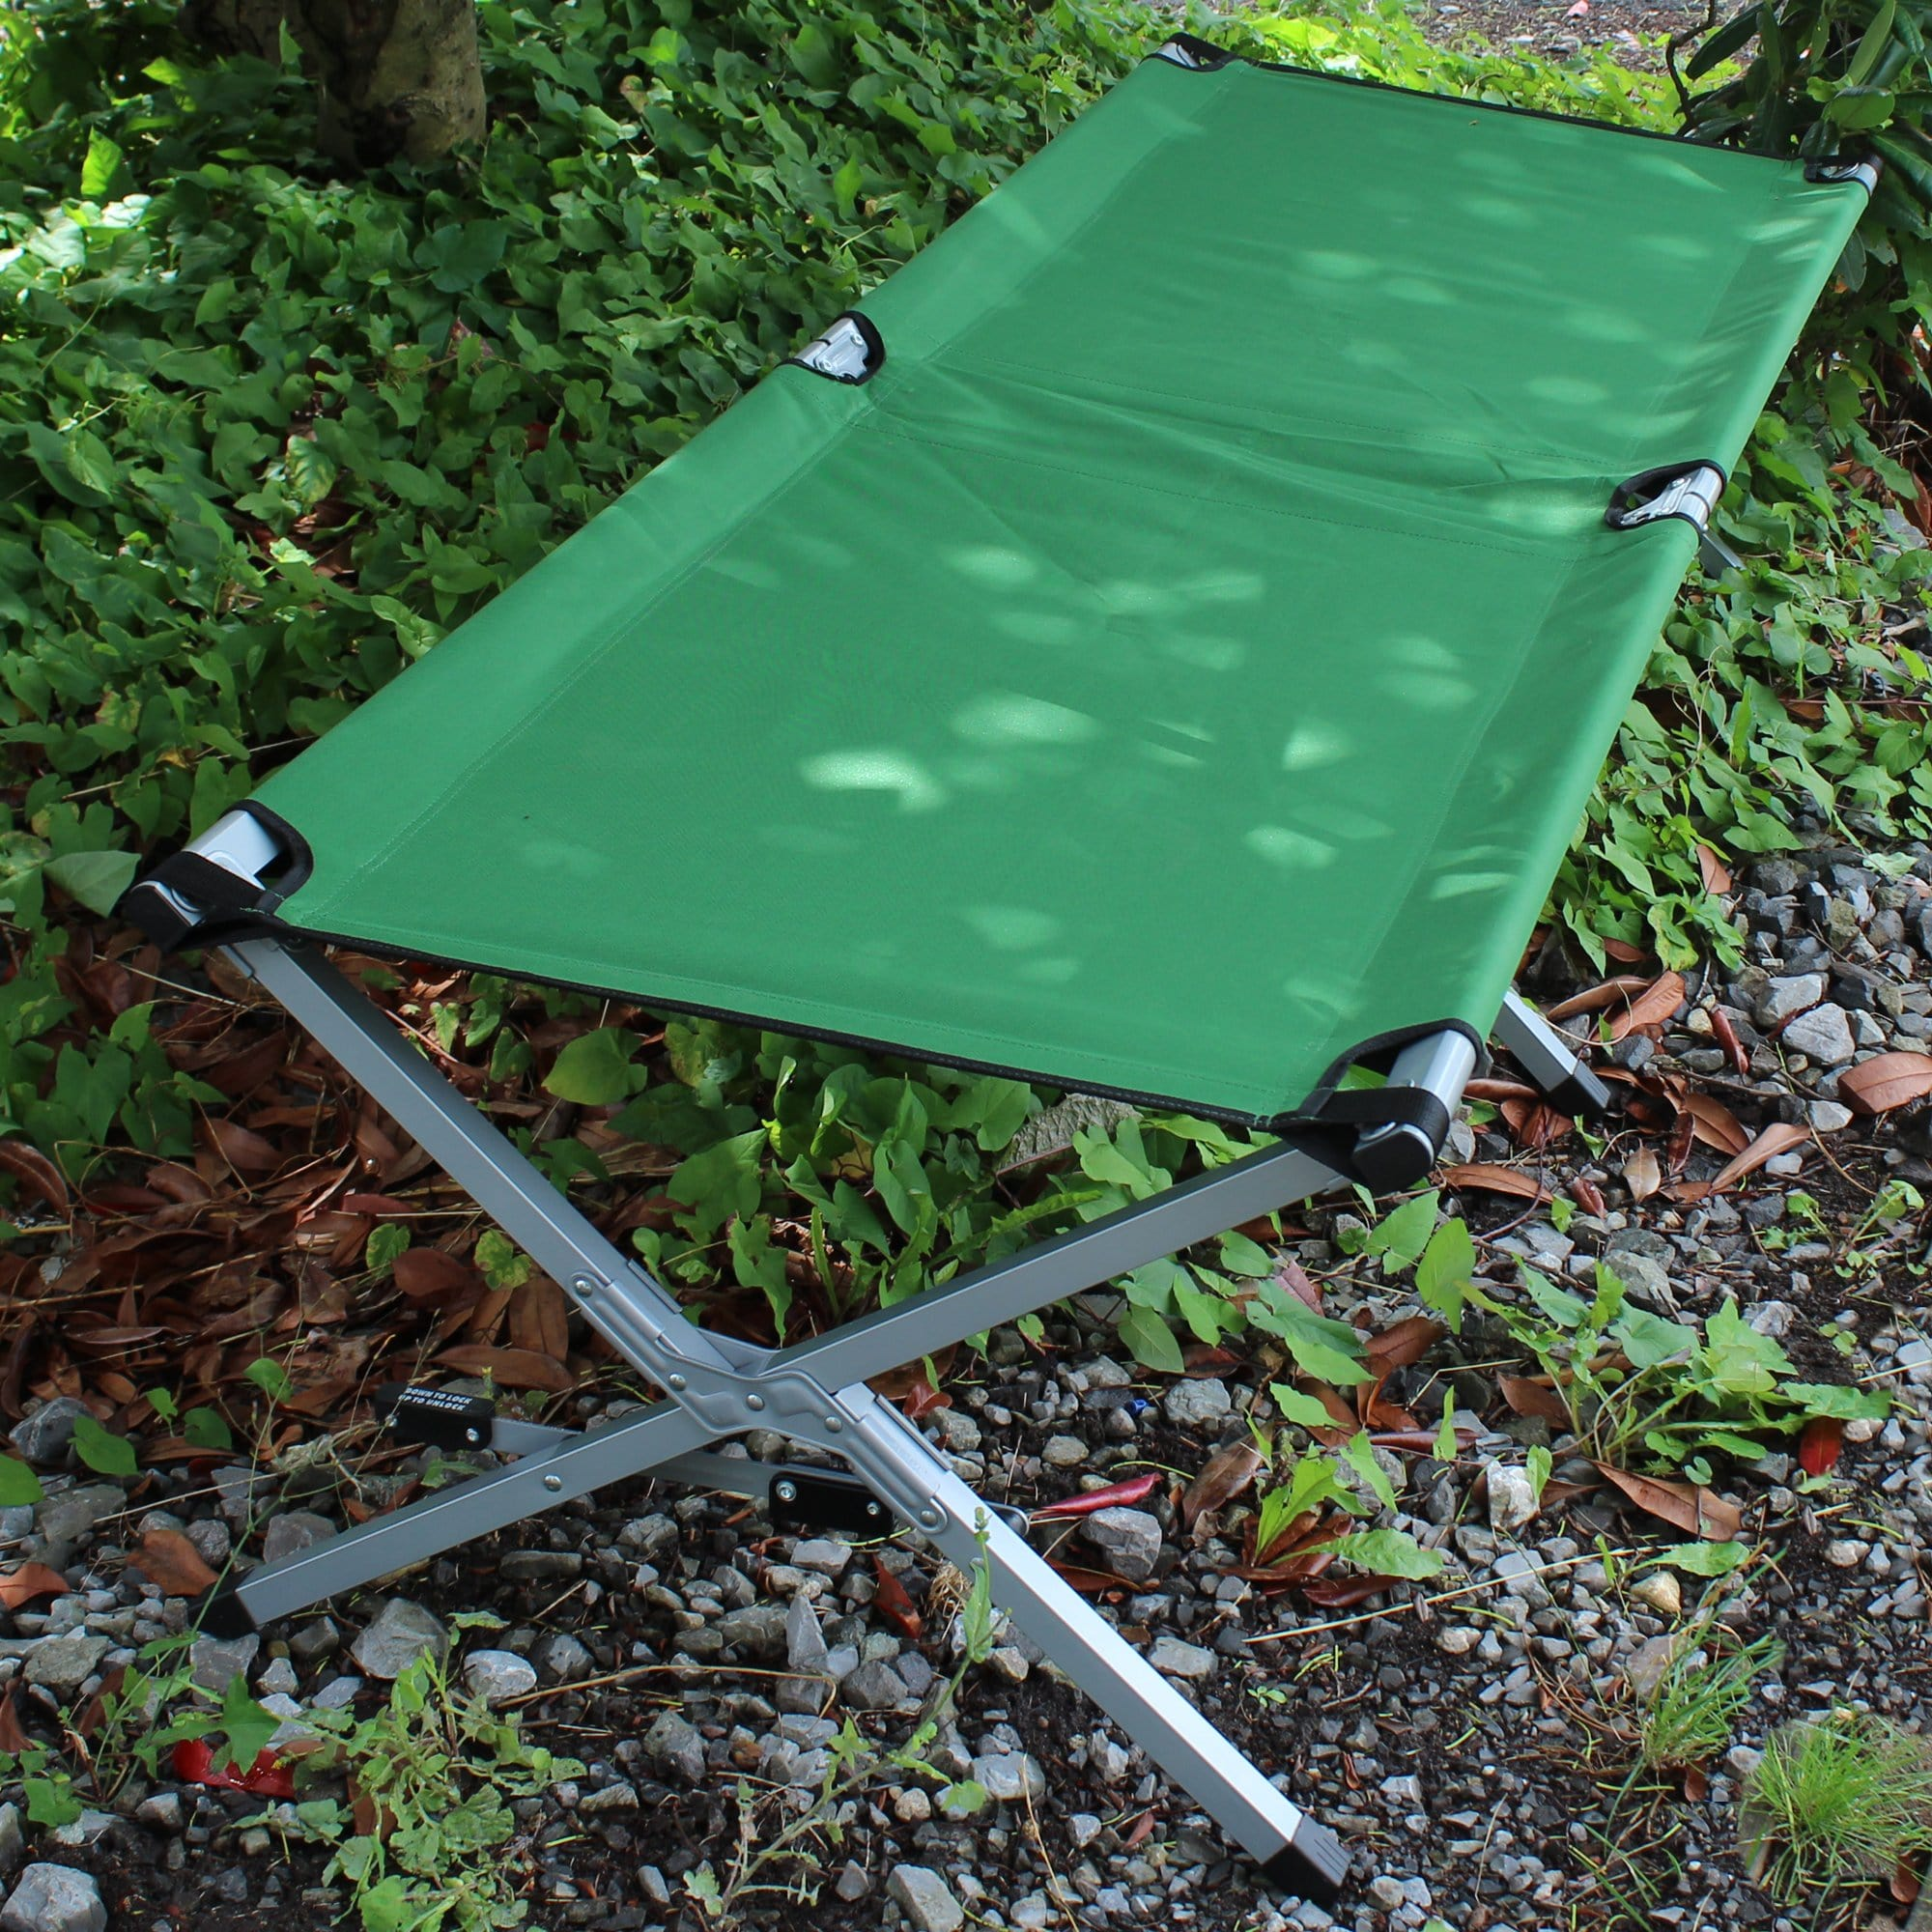 Military Style Cot outdoors